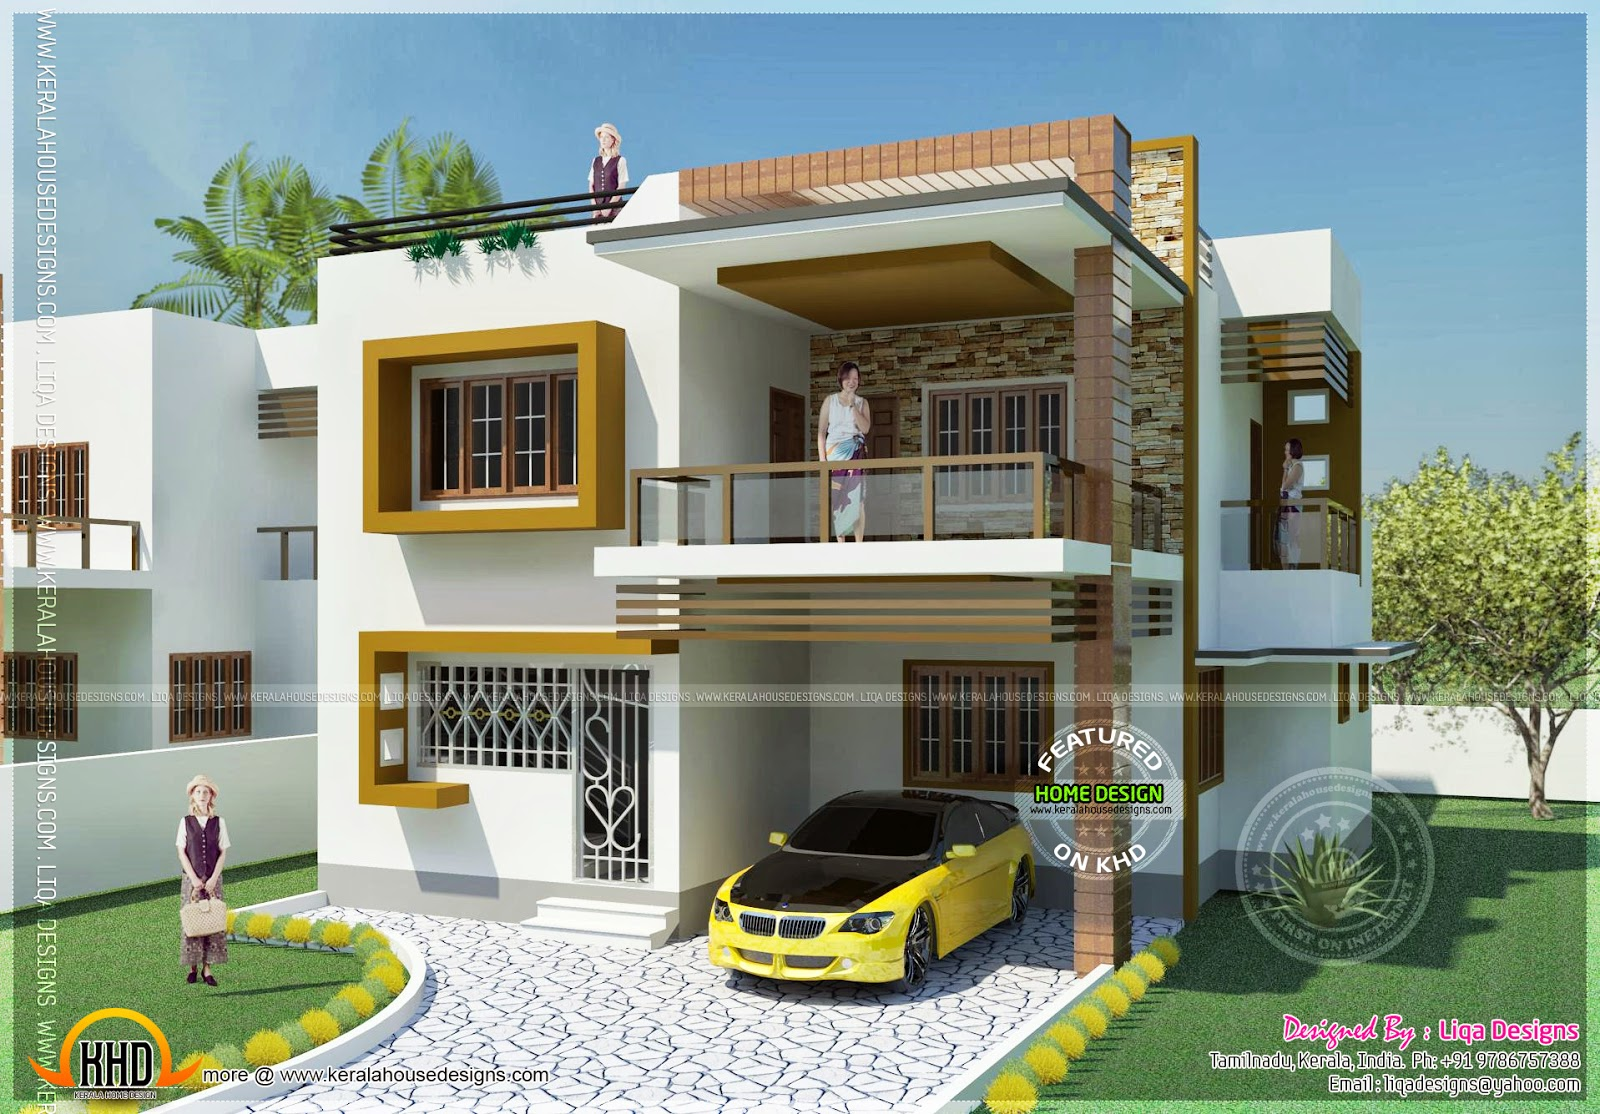 Double storied tamilnadu house design kerala home design for Home design images gallery